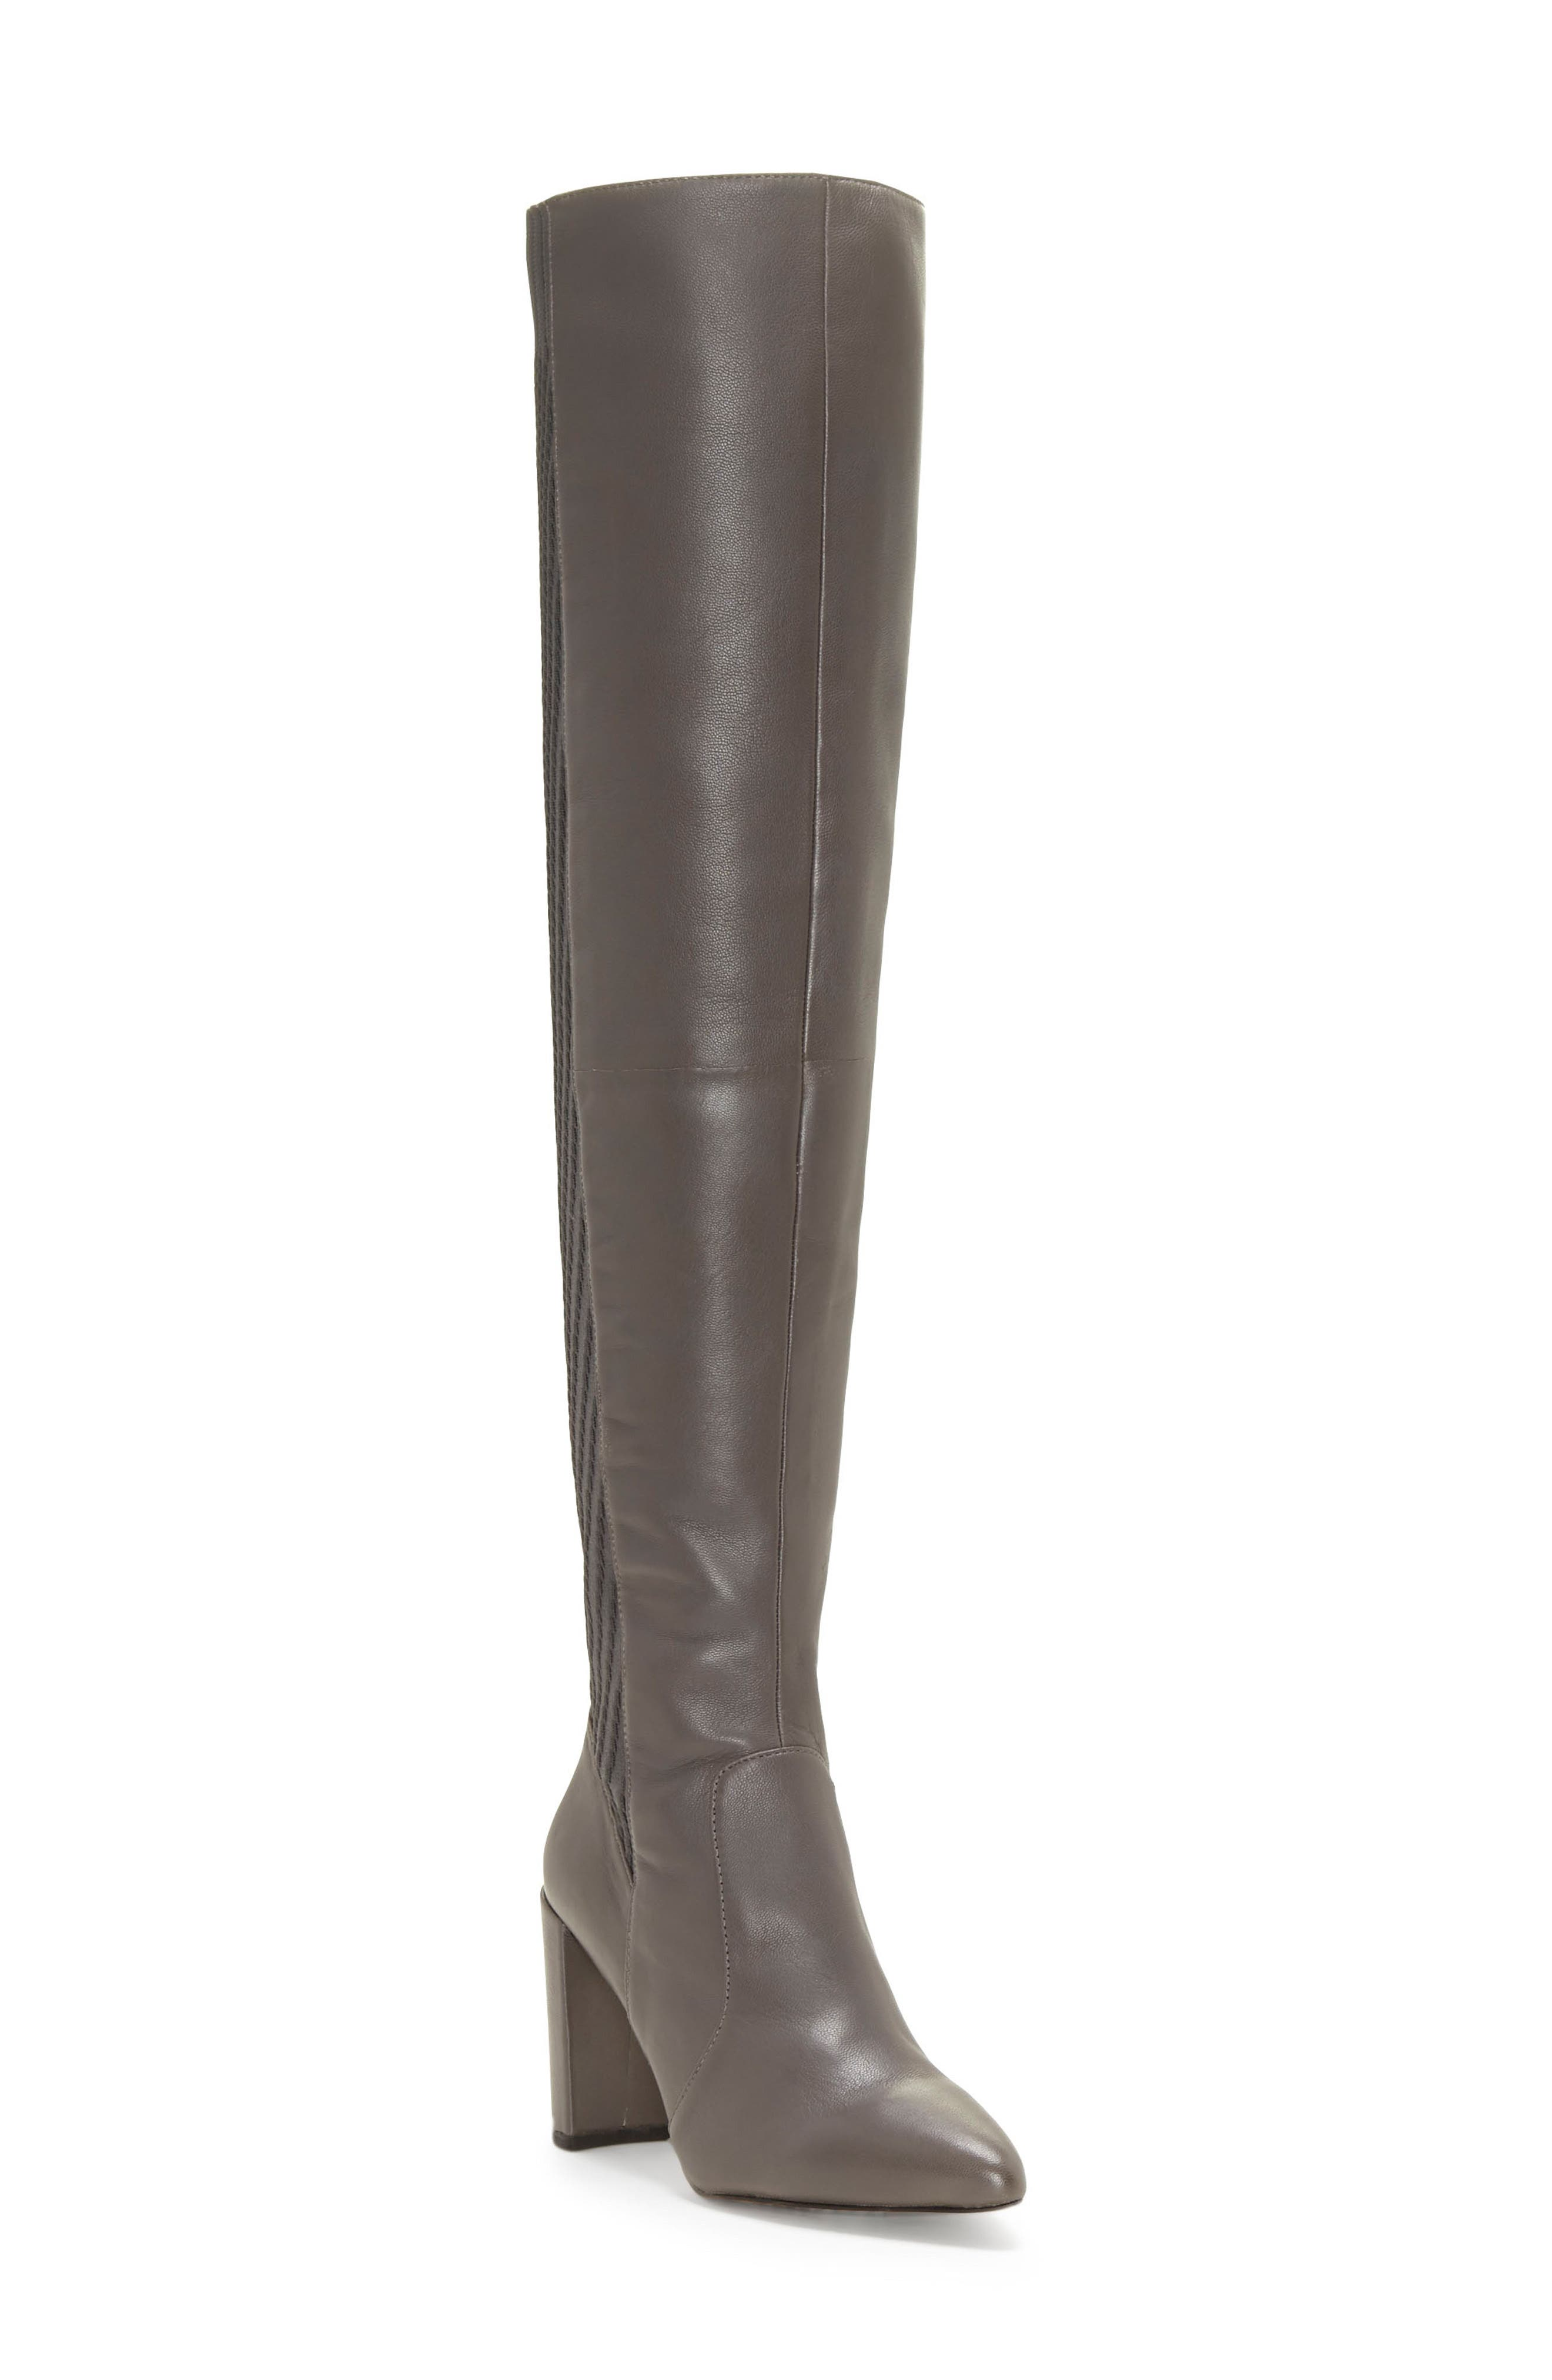 Majestie Over the Knee Boot,                             Main thumbnail 1, color,                             THUNDER LEATHER